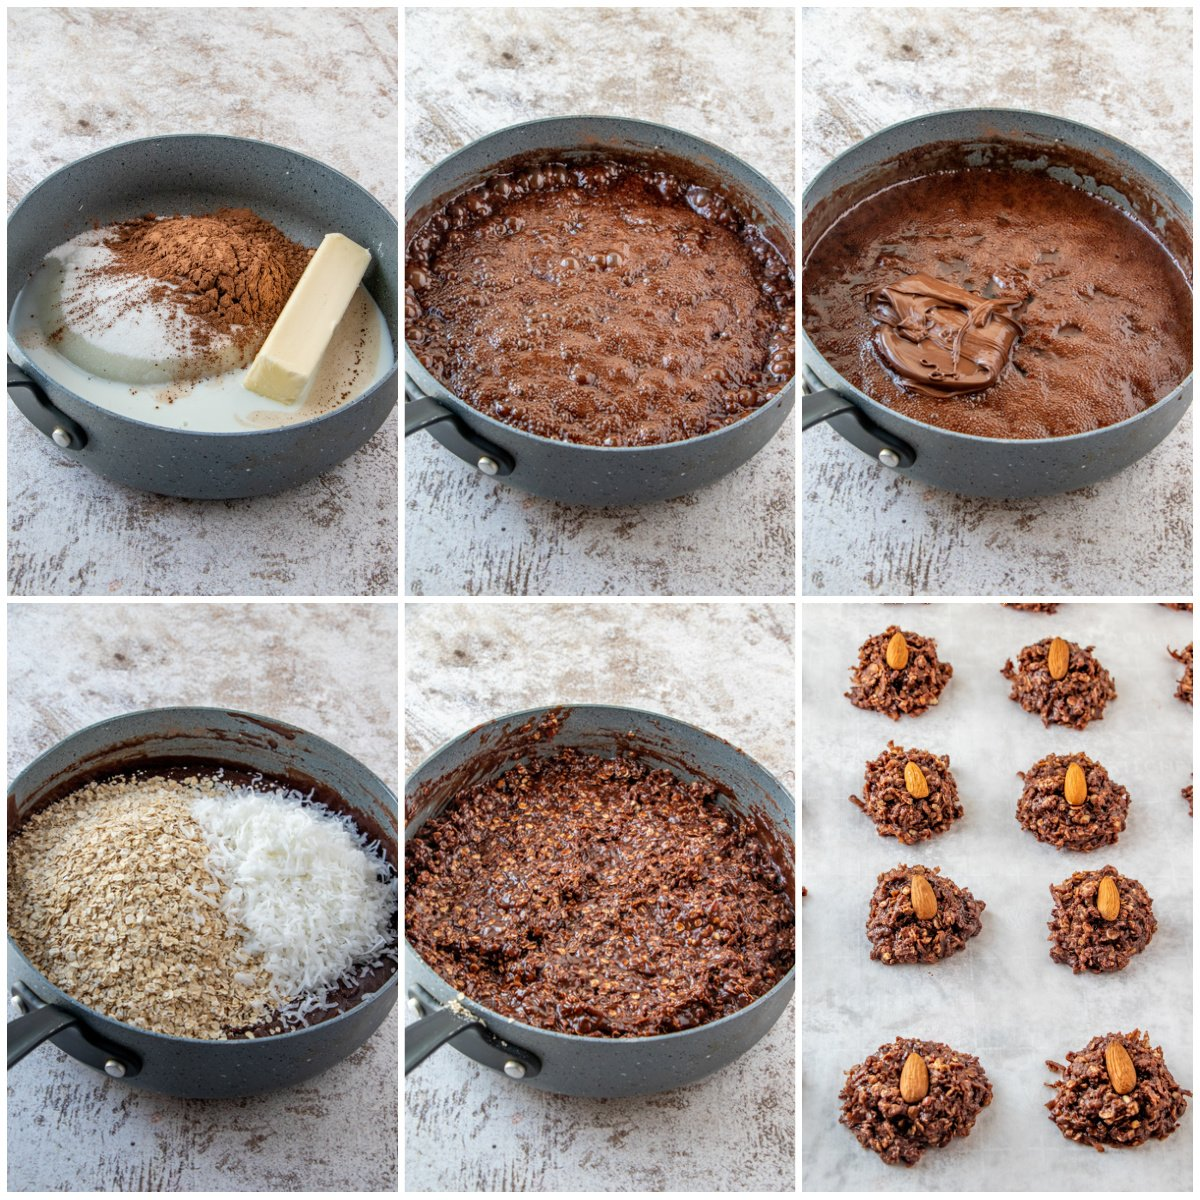 Step by step photos on how to make Almond Joy Cookies